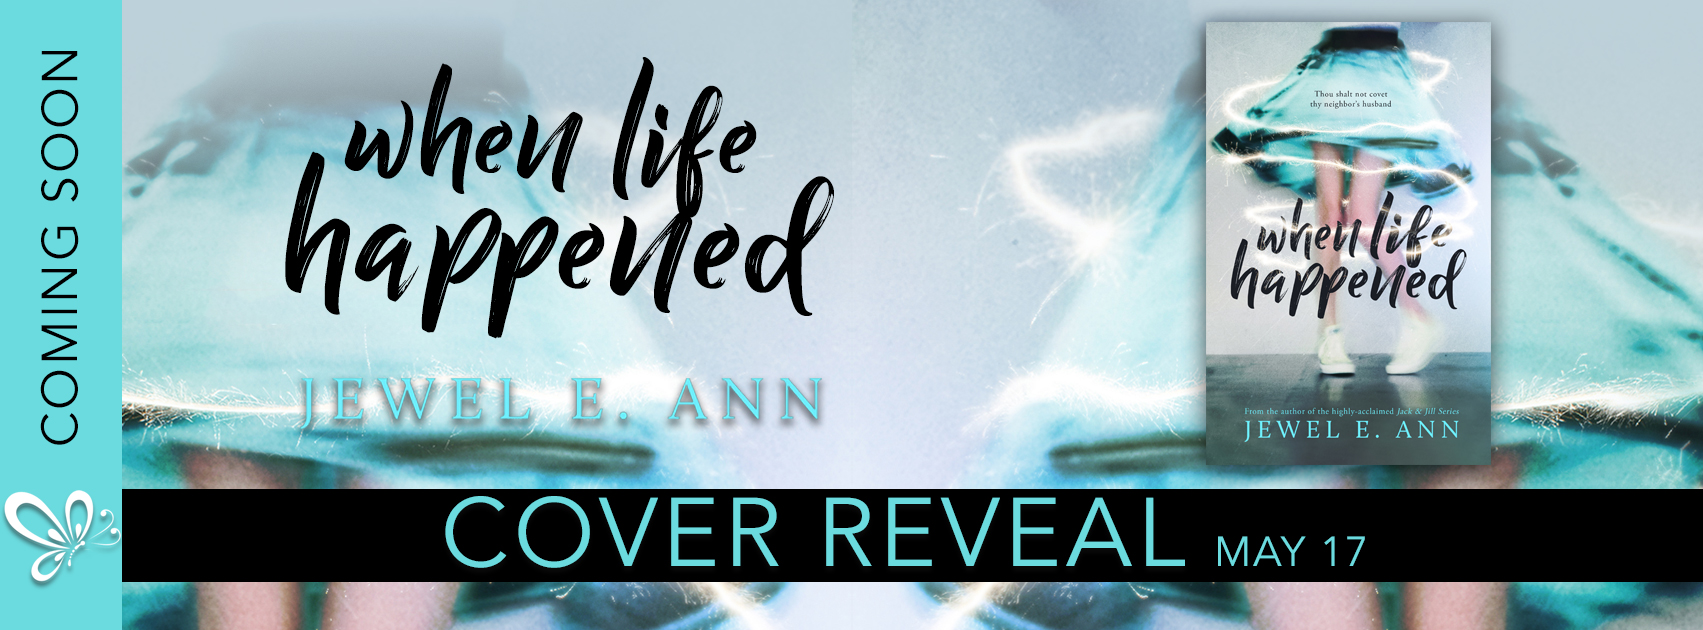 Cover Reveal: When Life Happened by Jewel E. Ann